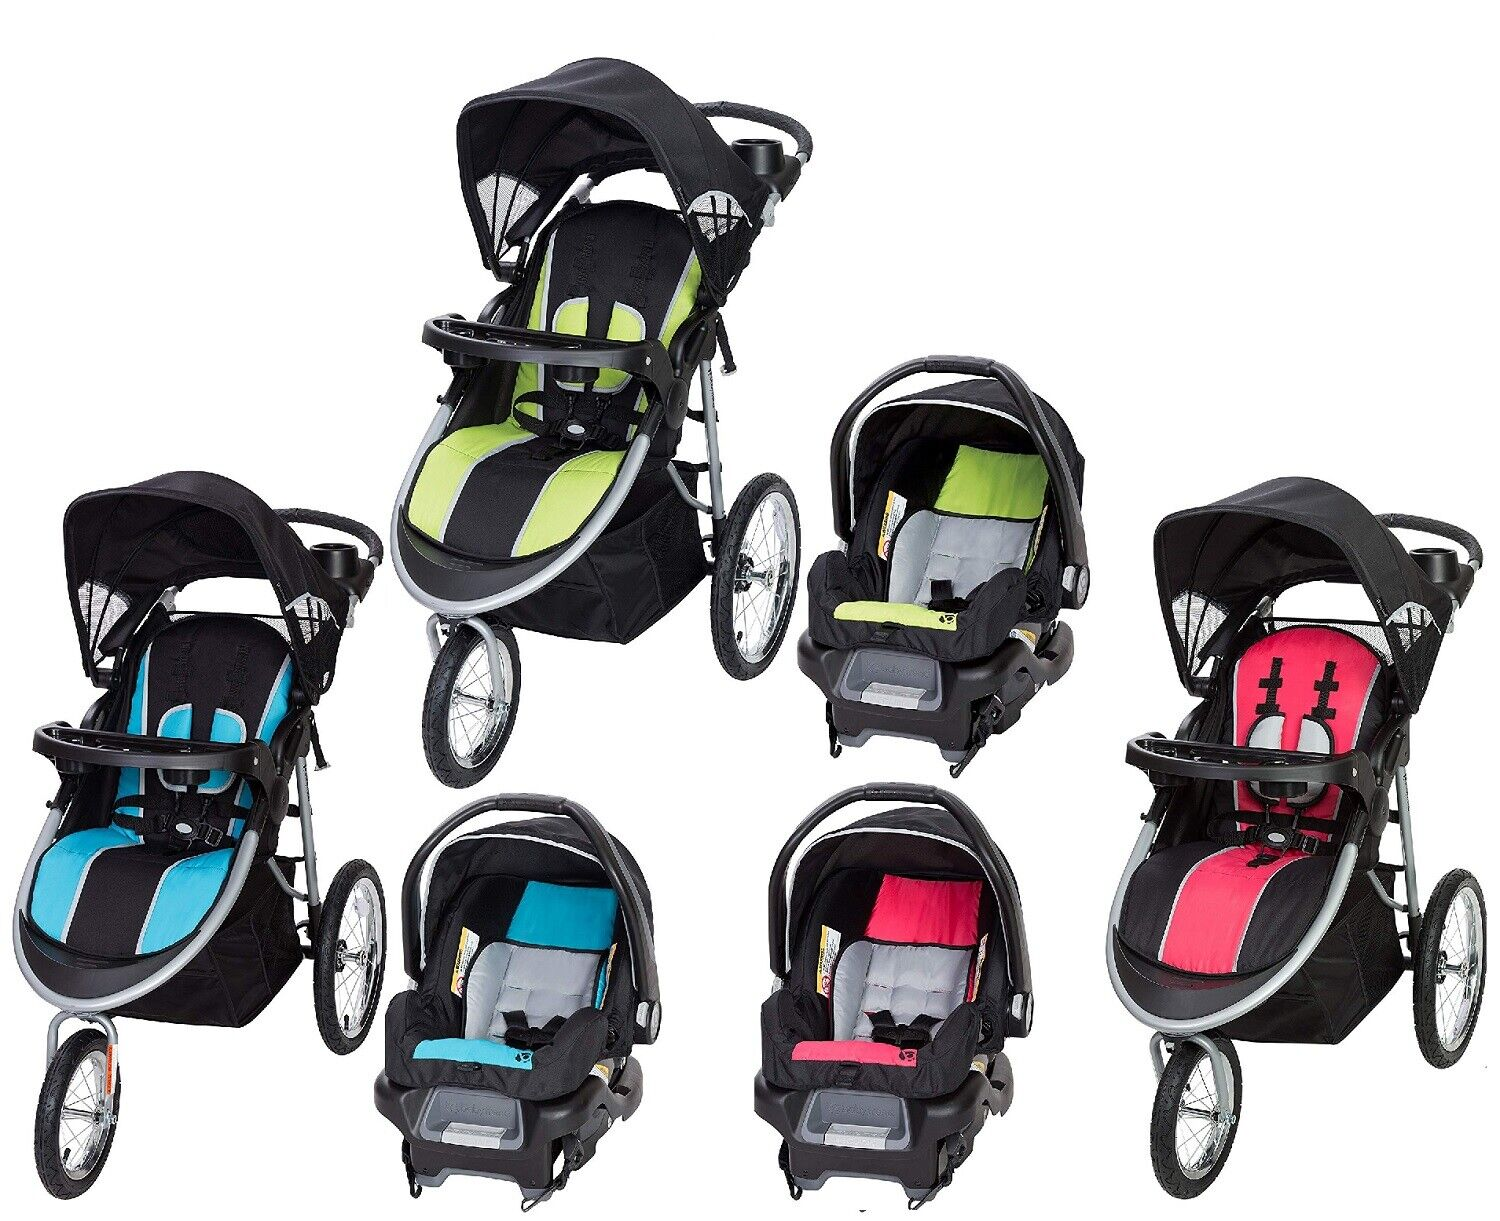 All Colors Stroller with Car Seat Baby Trend Pathway 35 Jogg